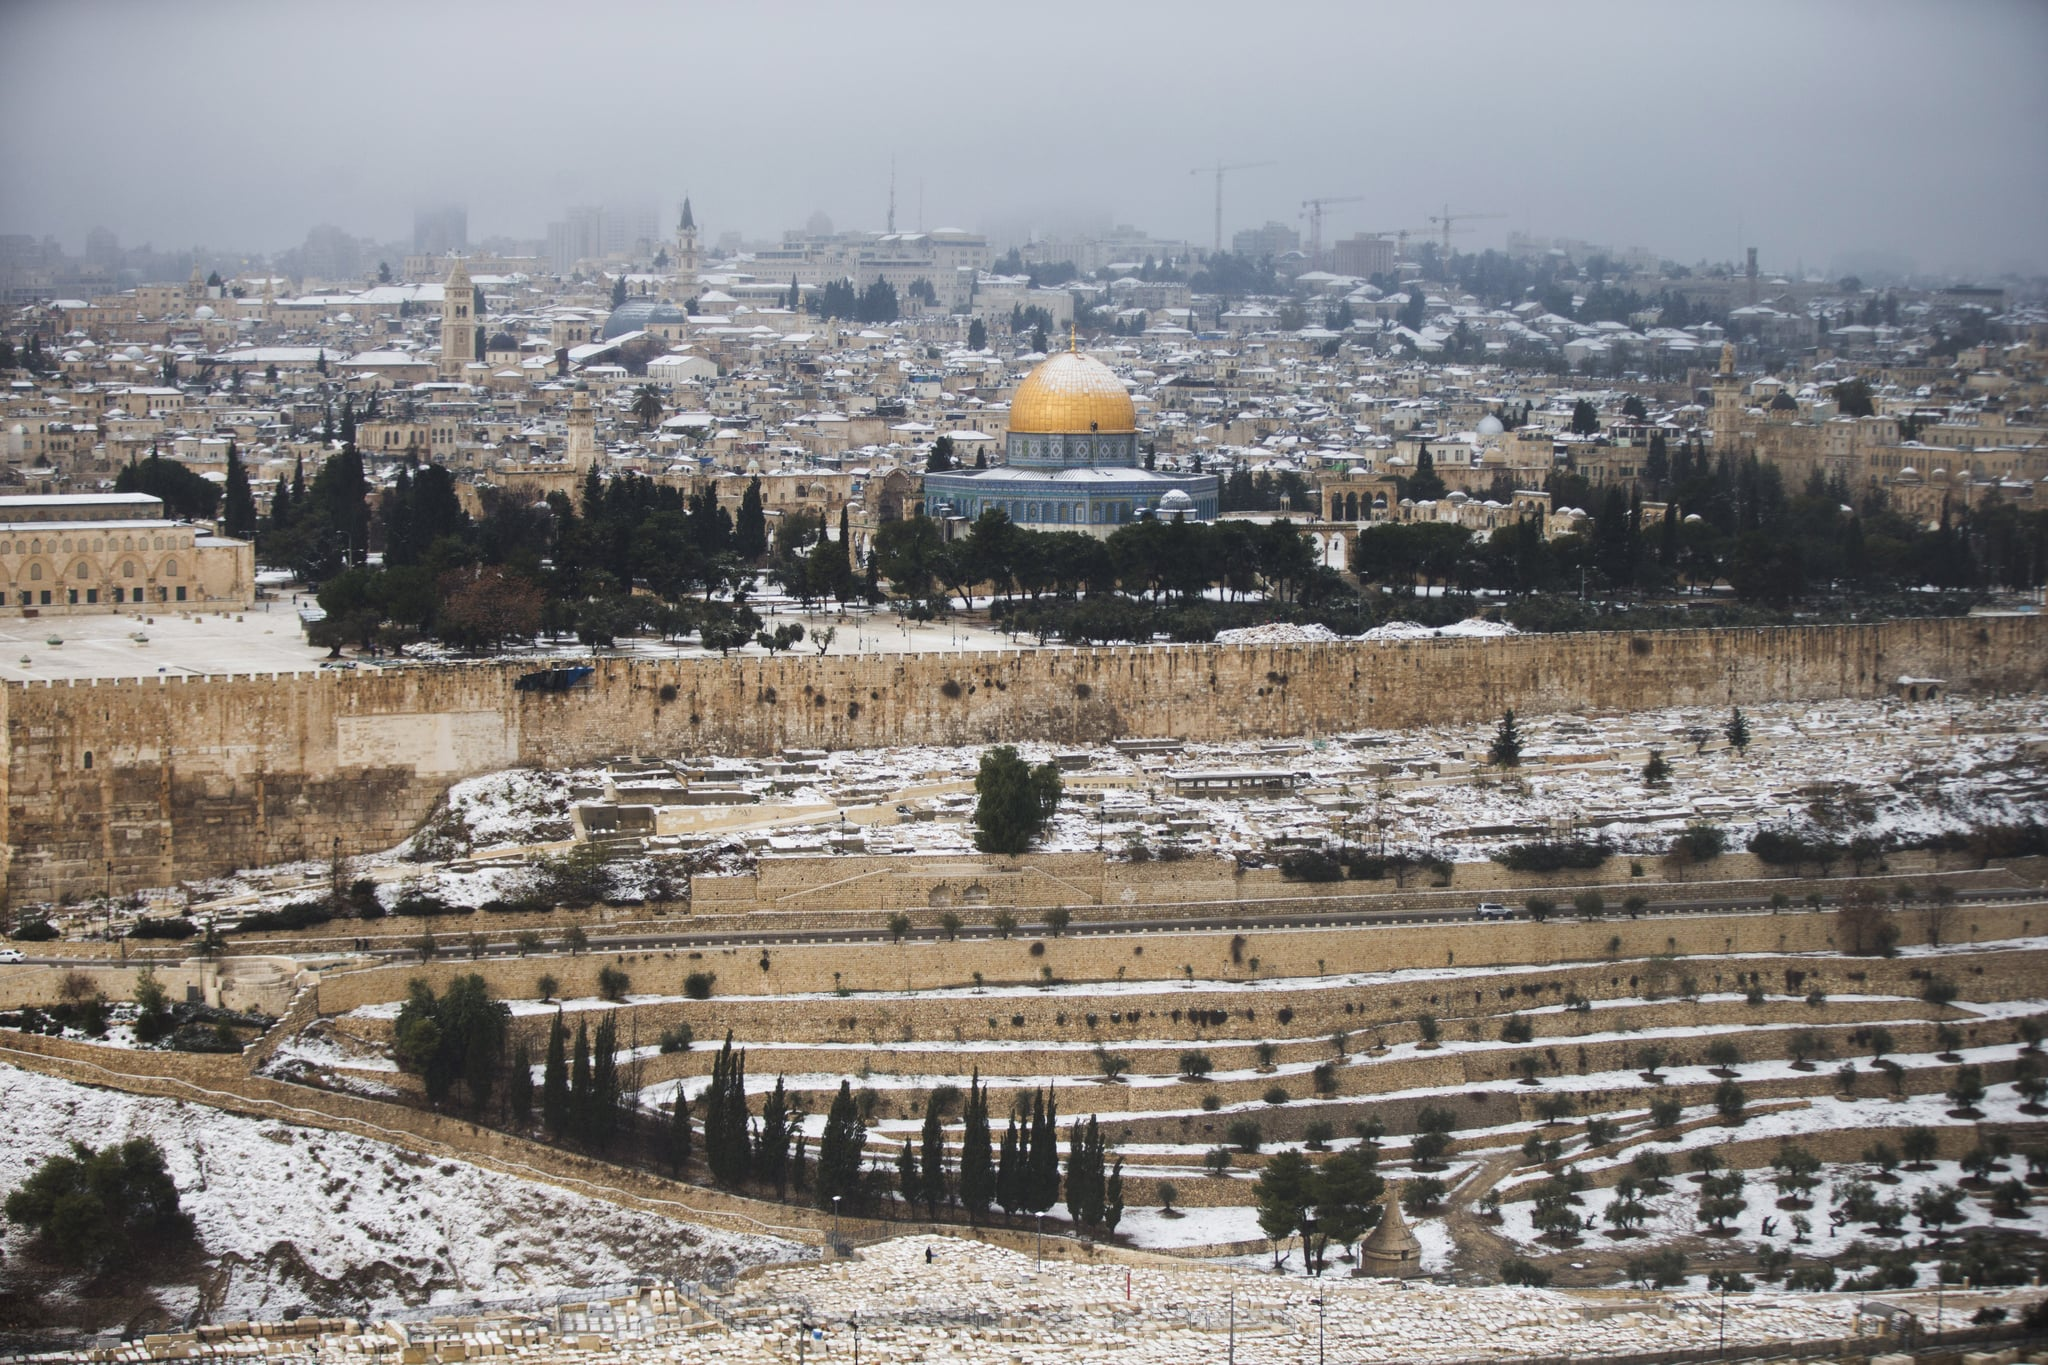 A snowstorm moved through Jerusalem, leaving the Dome of the Rock at the Al-Aqsa mosque covered with snow.